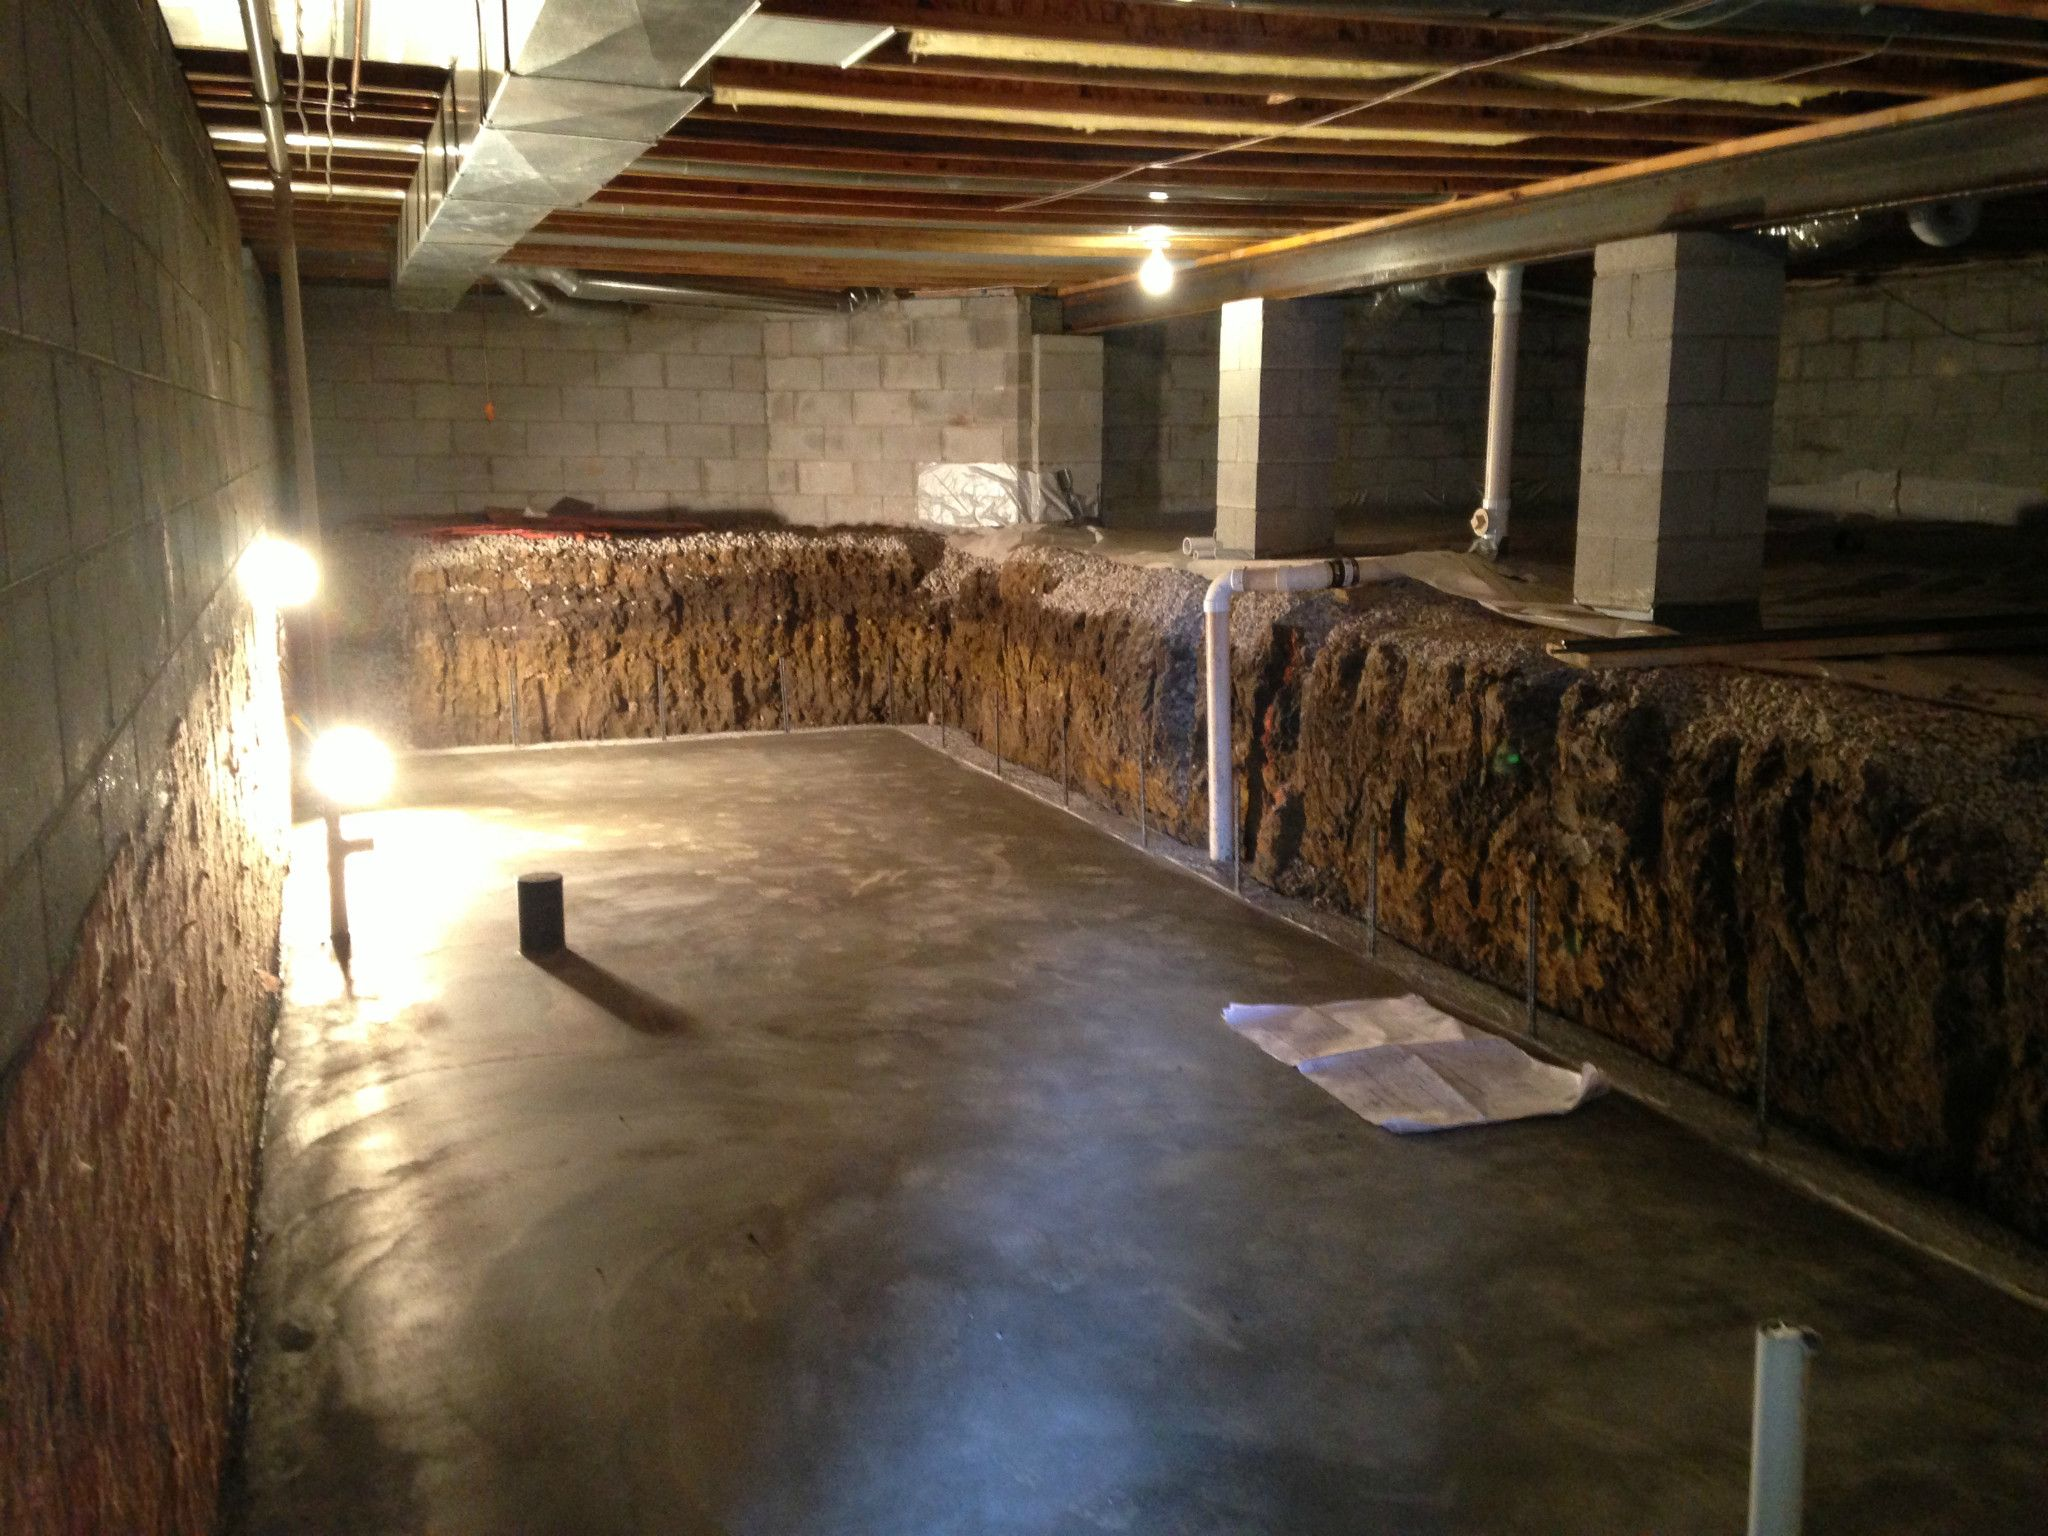 Crawl Space Dig Out To Make A Basement Columbus Ideas